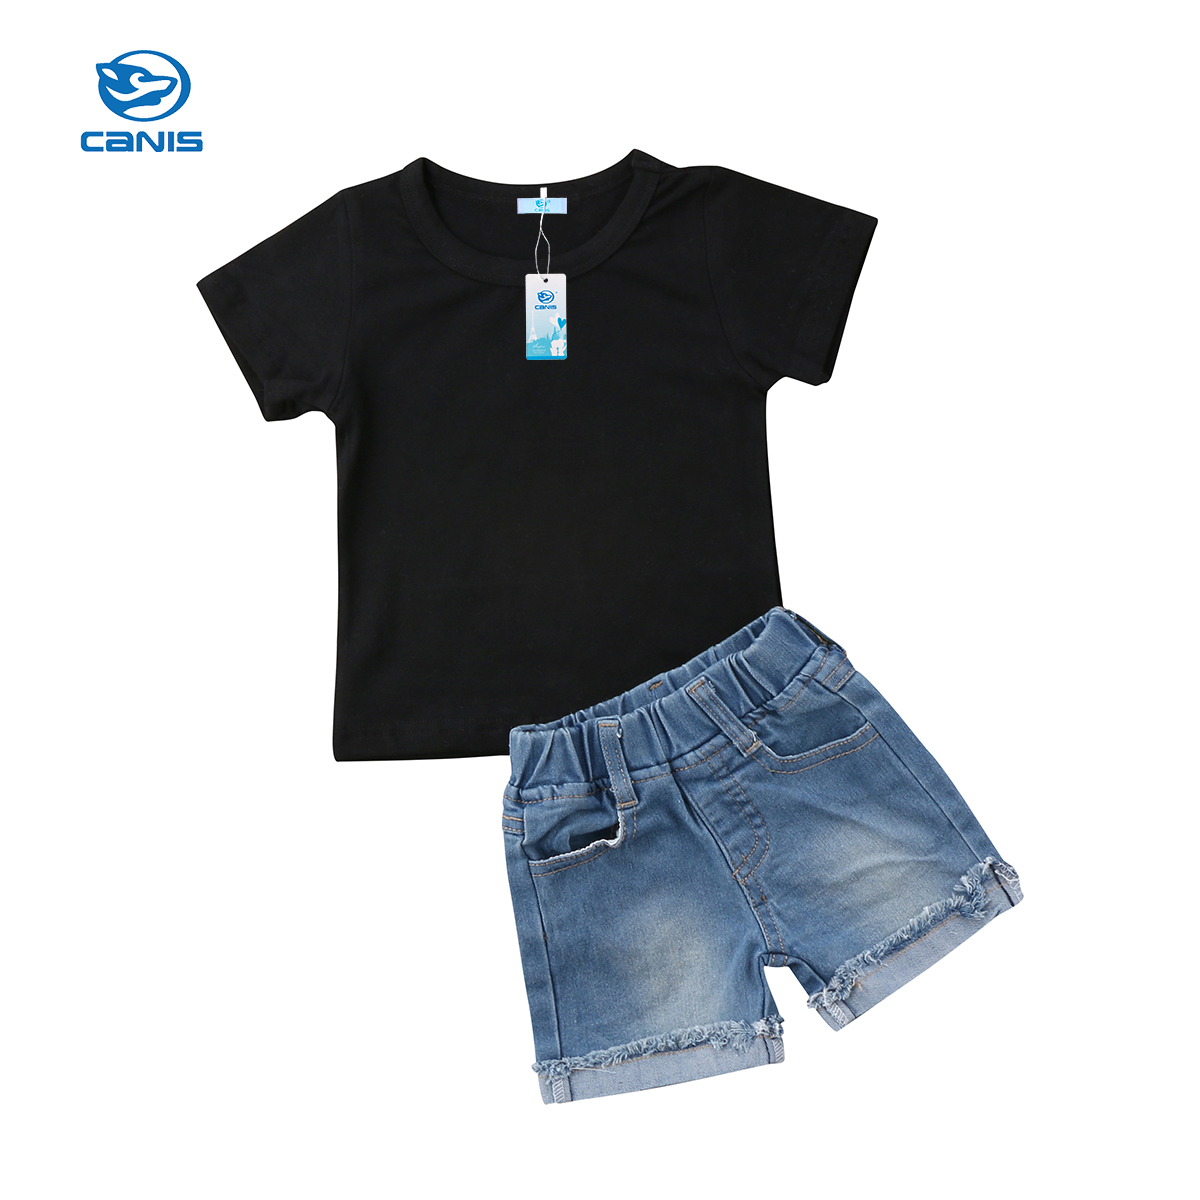 2018 Brand New Toddler Infant Casual Kids Baby Boys Short Sleeve Tops T-Shirt+Denim Shorts Jeans Children Summer Clothing 1-6T